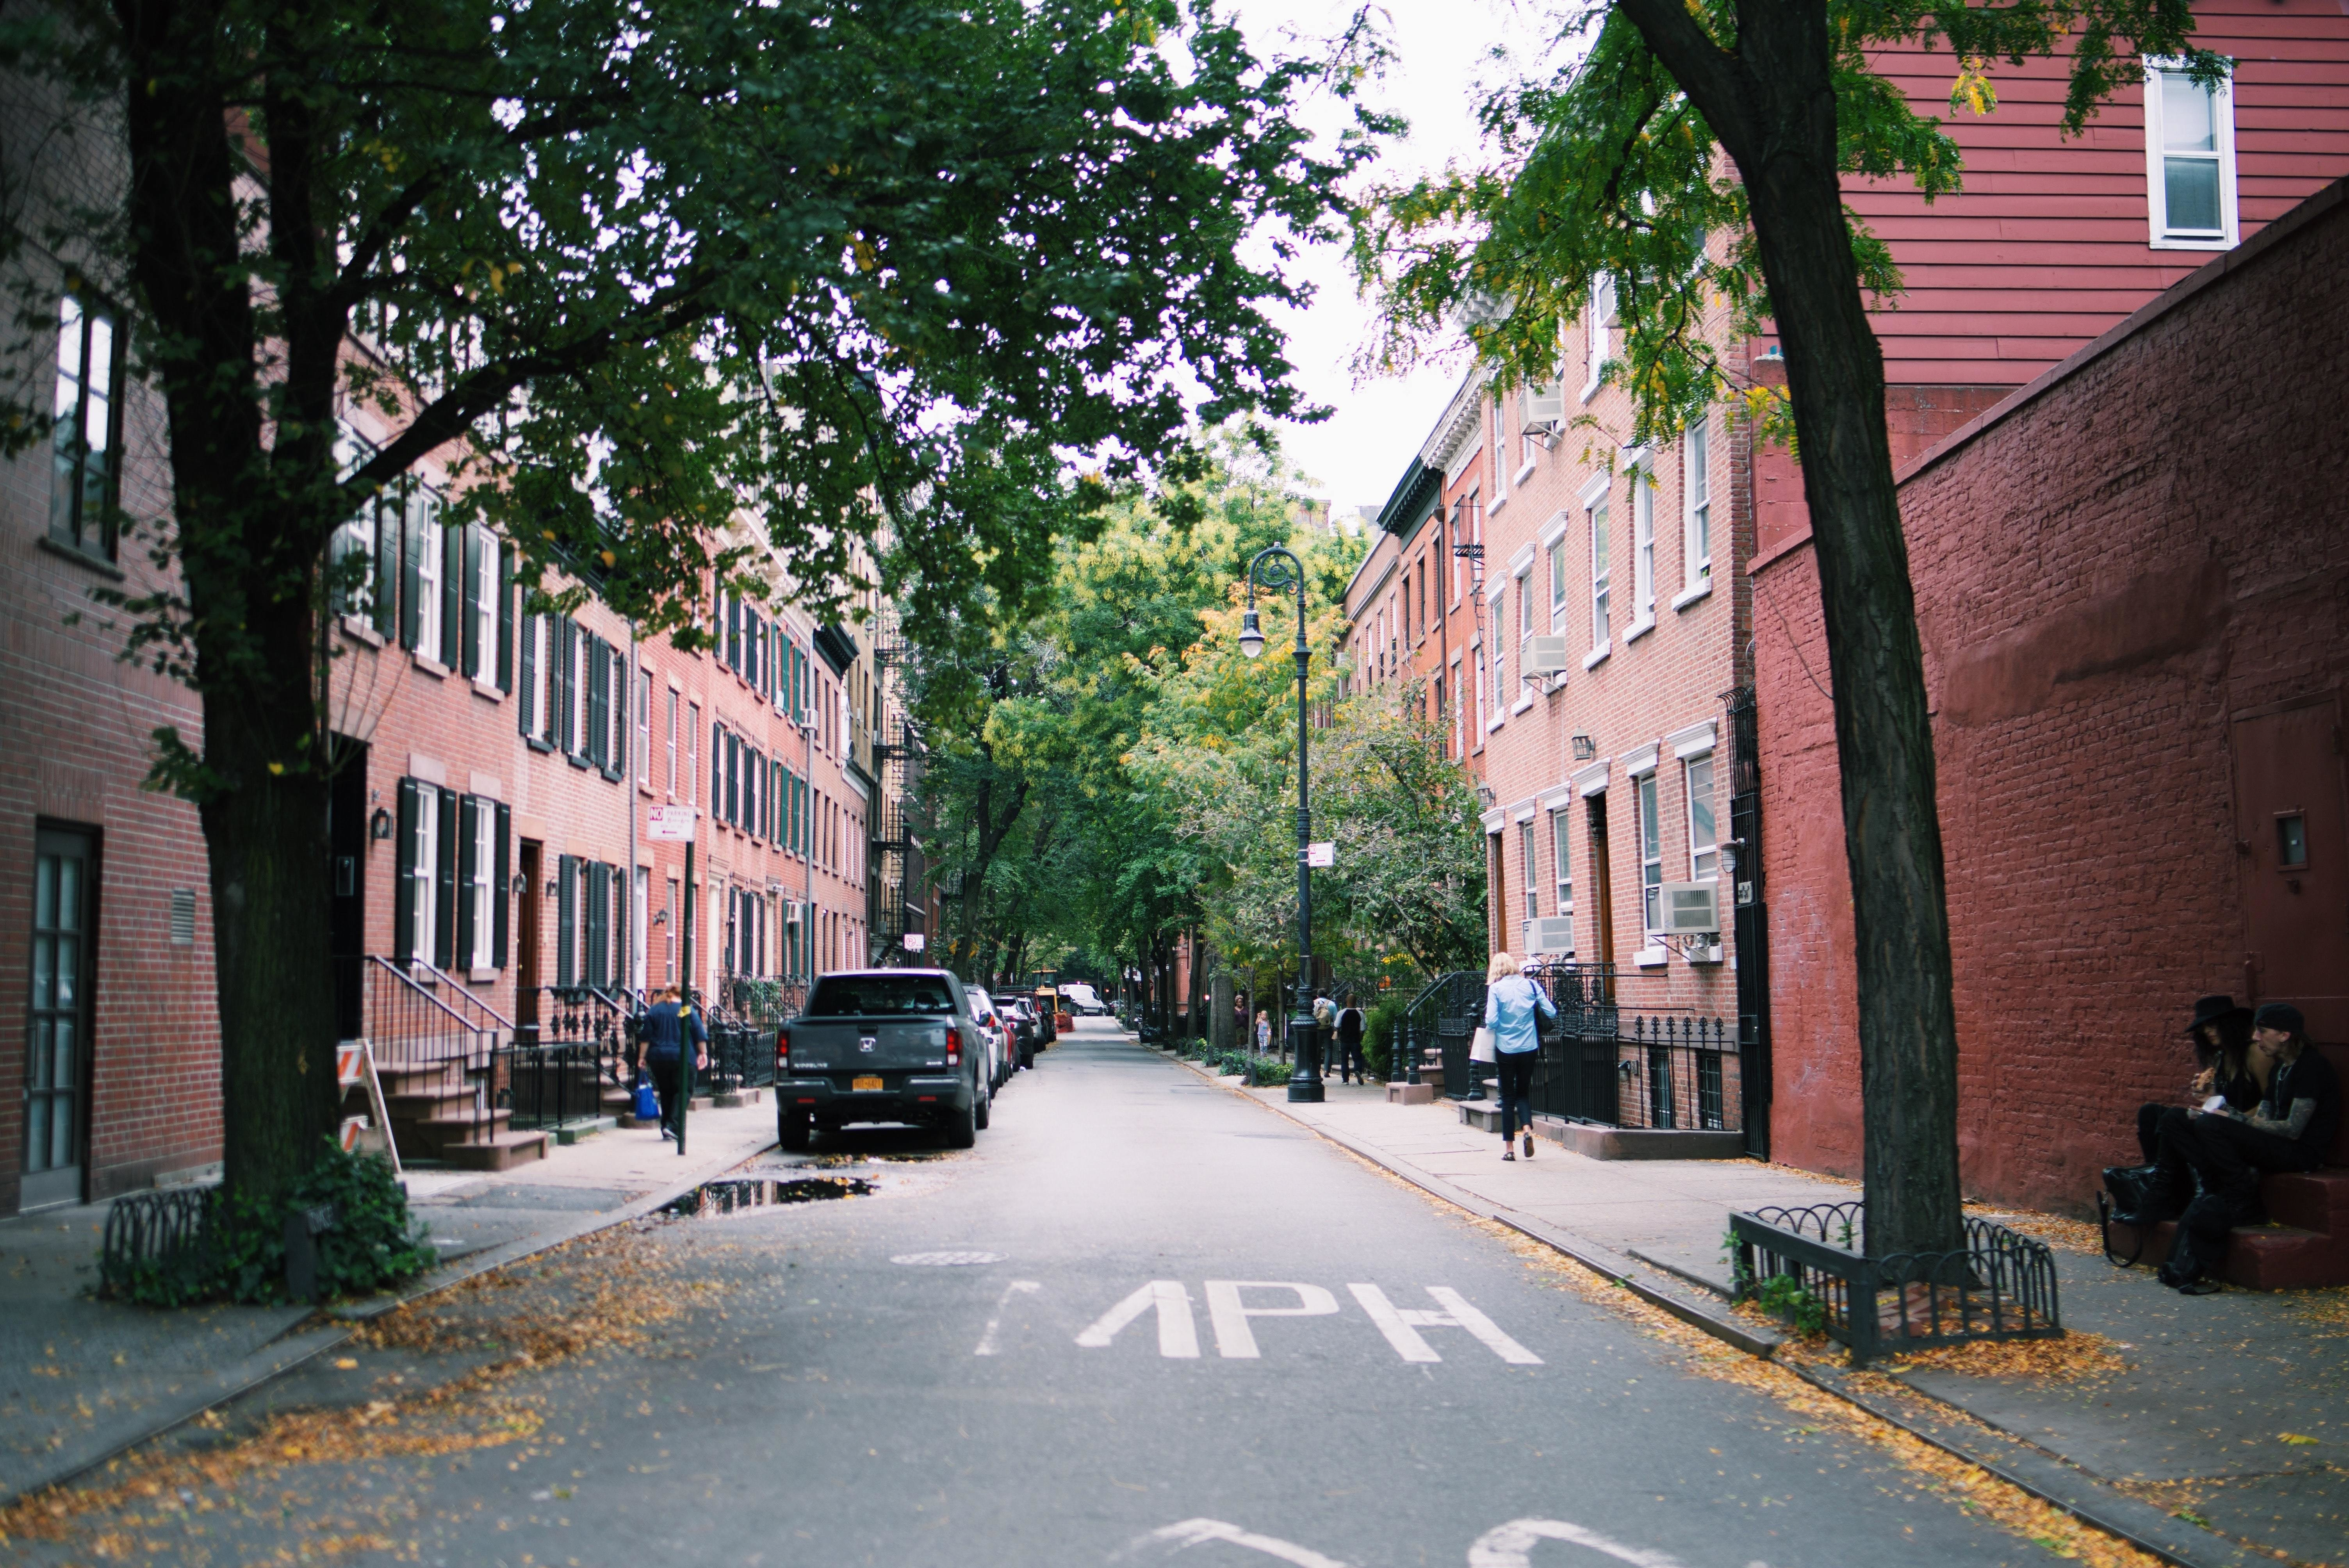 a picture of a street in new york city